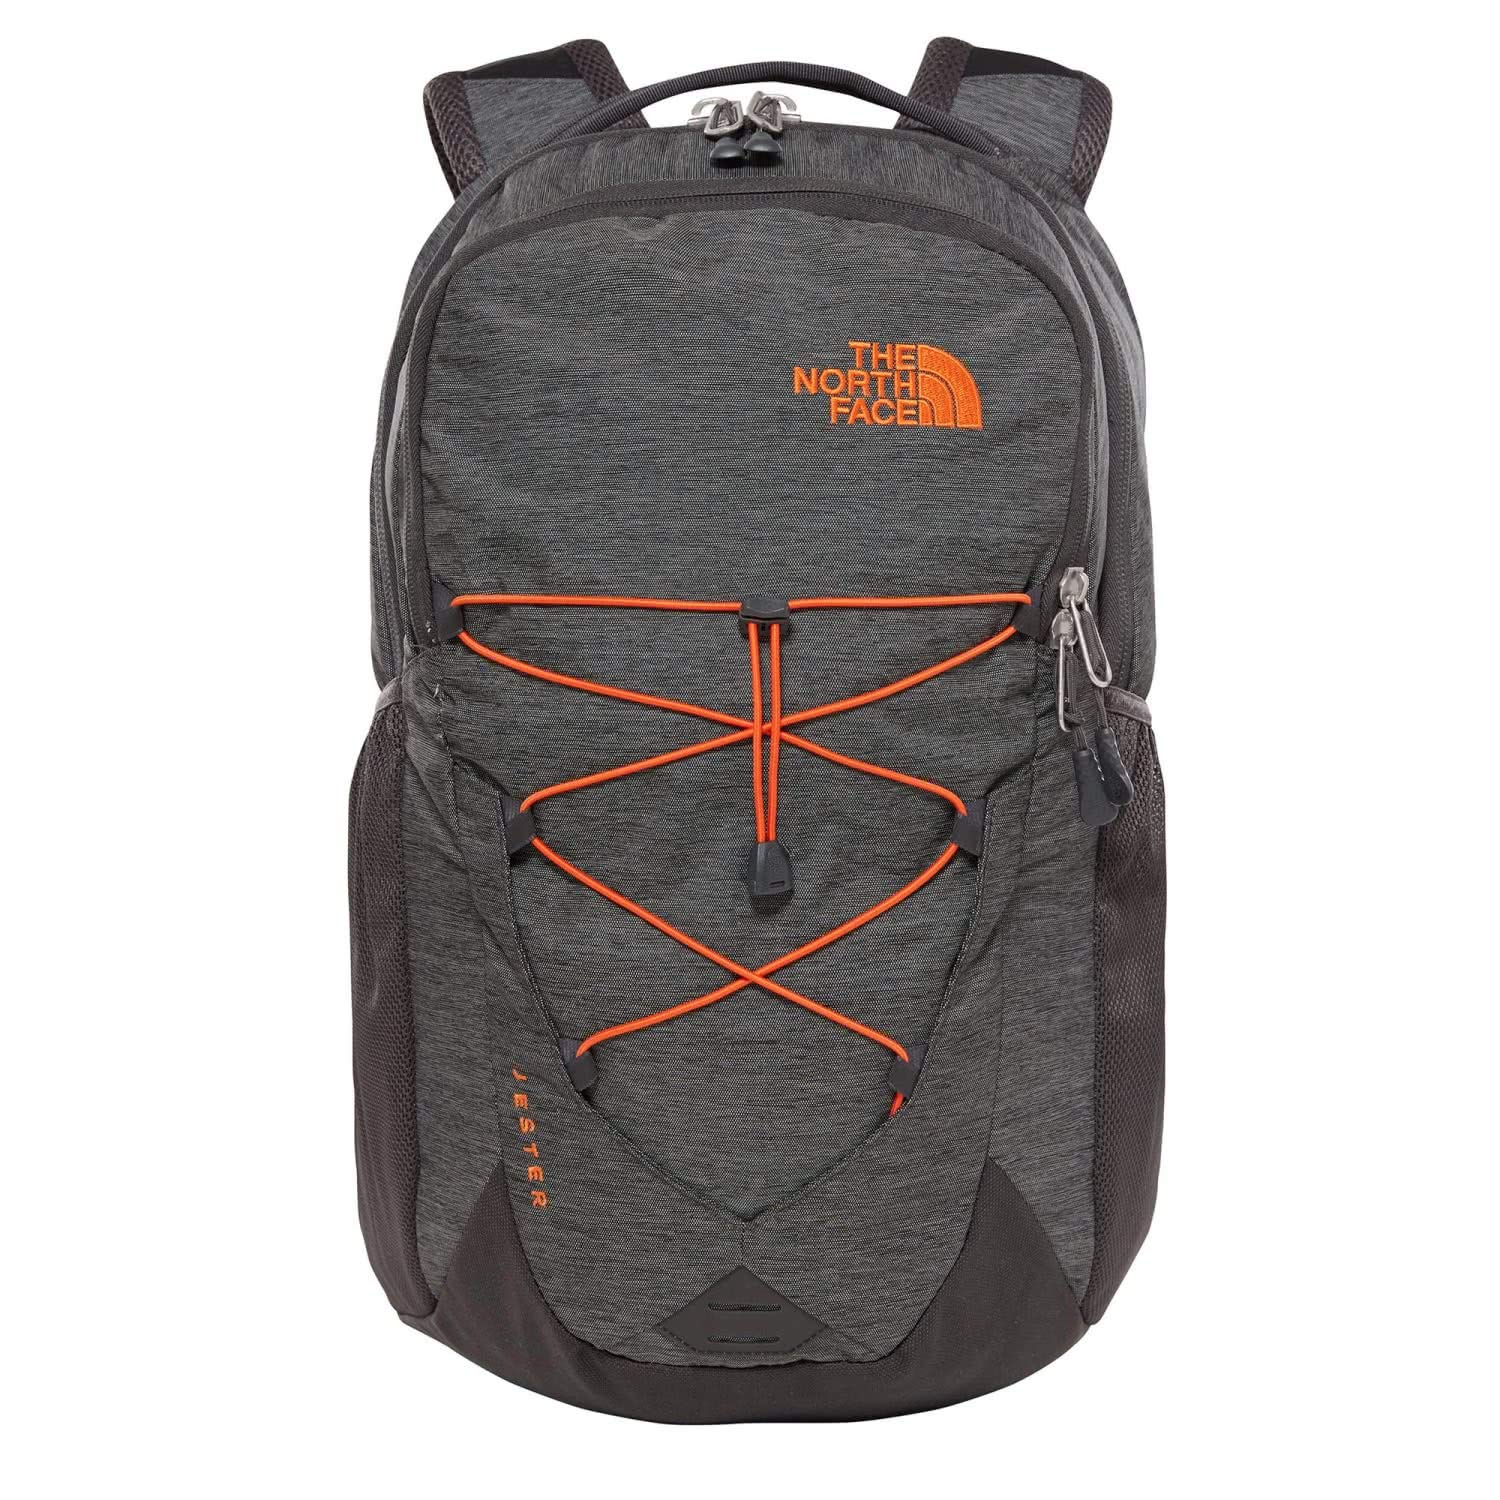 The North Face Jester - TNF Dark Grey Heather & Persian Orange - OS